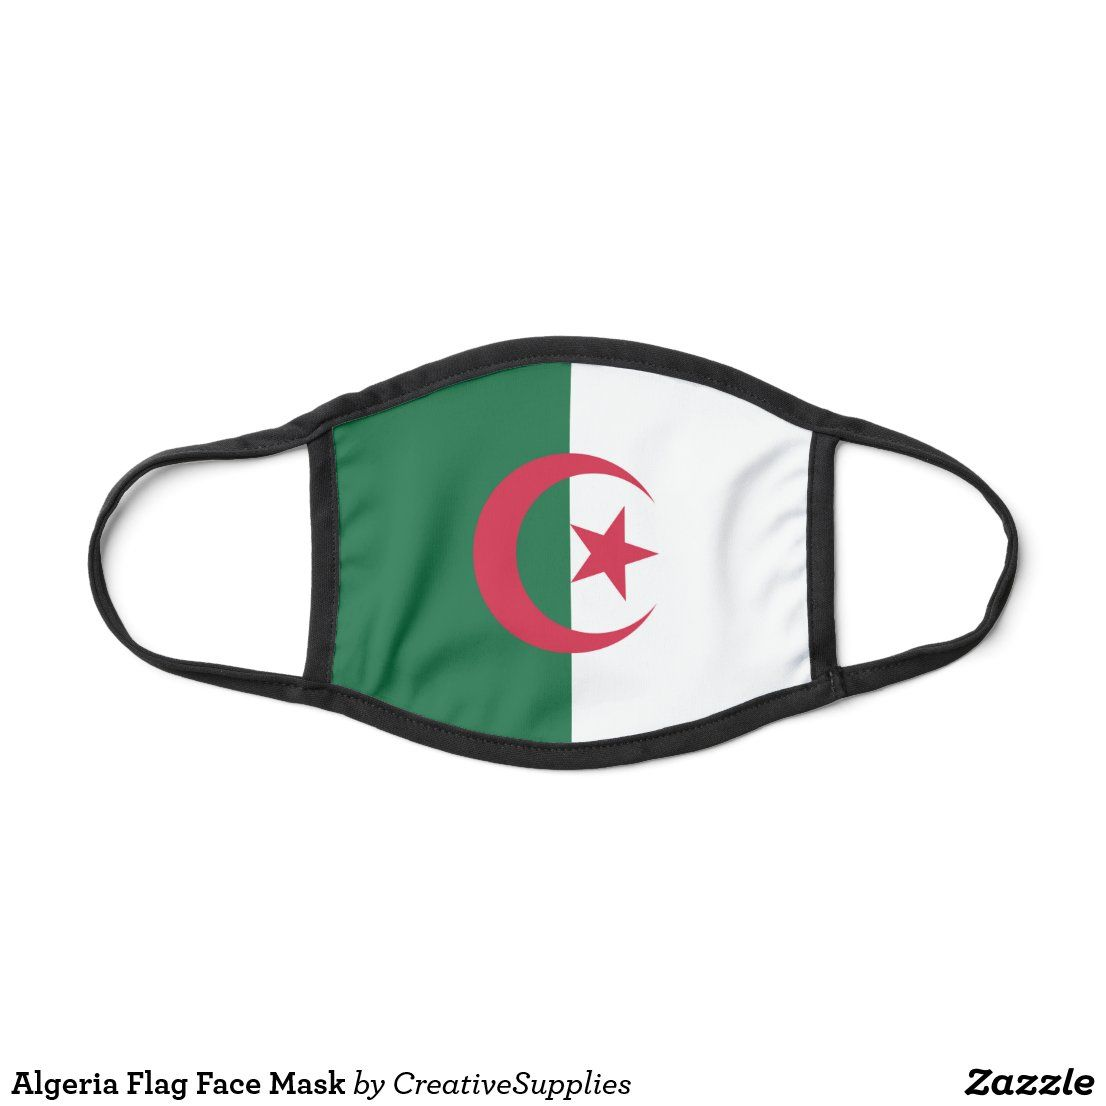 Algeria Flag Face Mask Zazzle Com In 2020 Flag Face Face Mask Algeria Flag